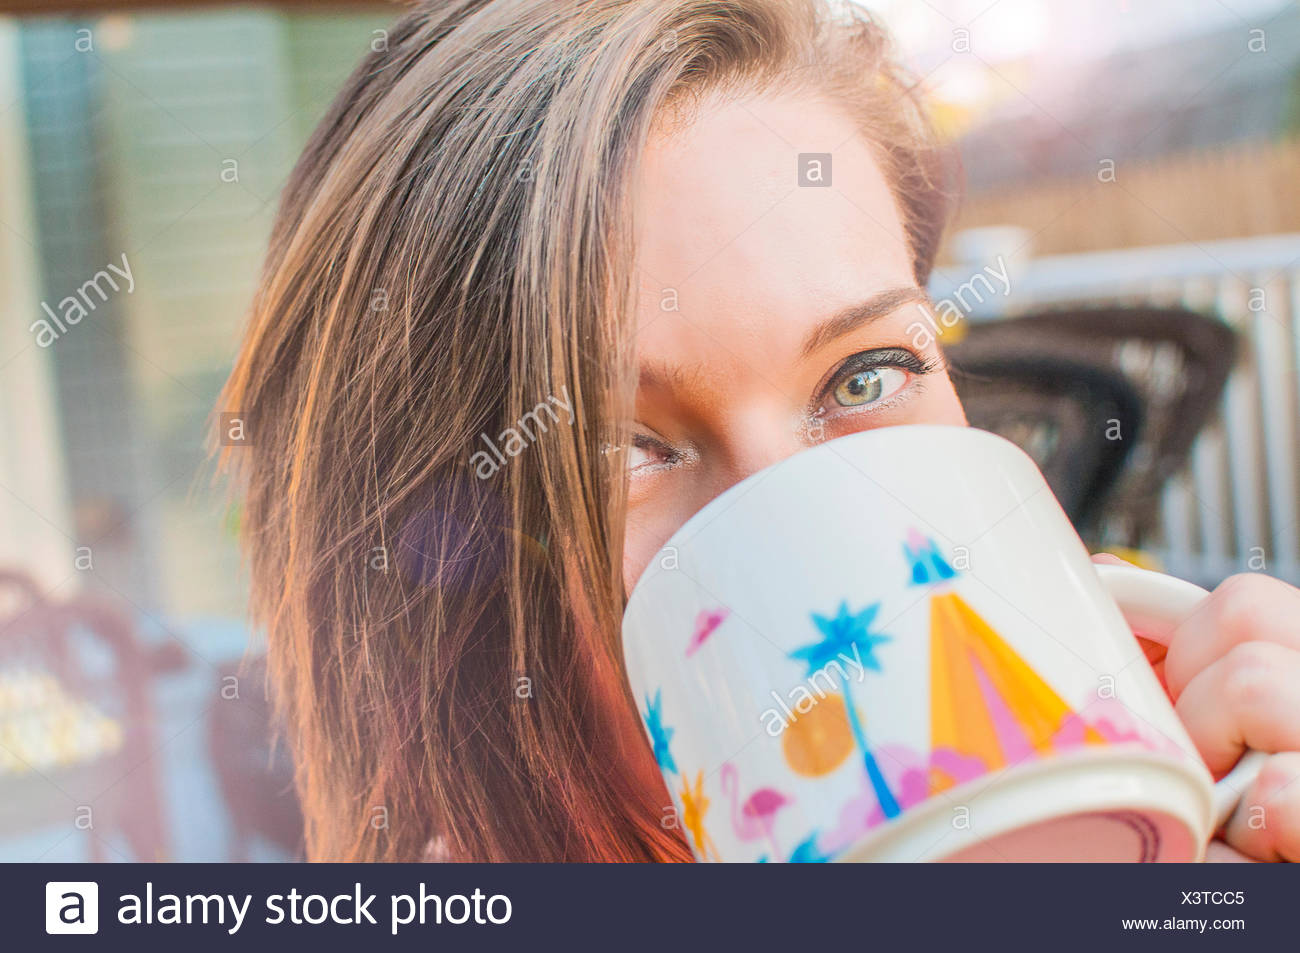 Close up of young woman drinking coffee from mug - Stock Image